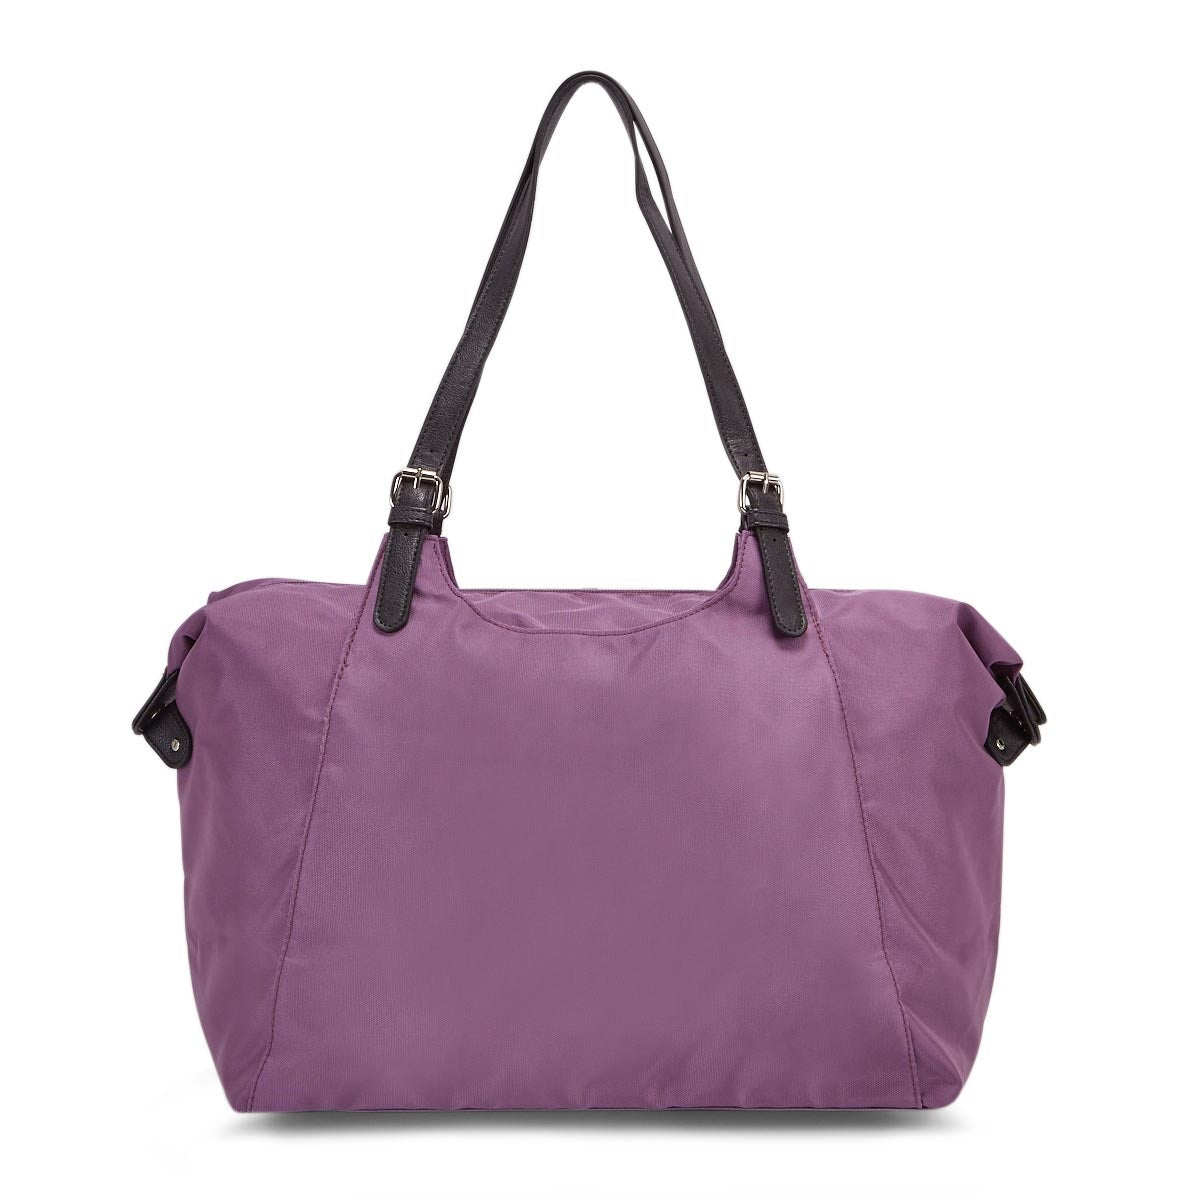 Lds Roots73 lilac nylon large tote bag